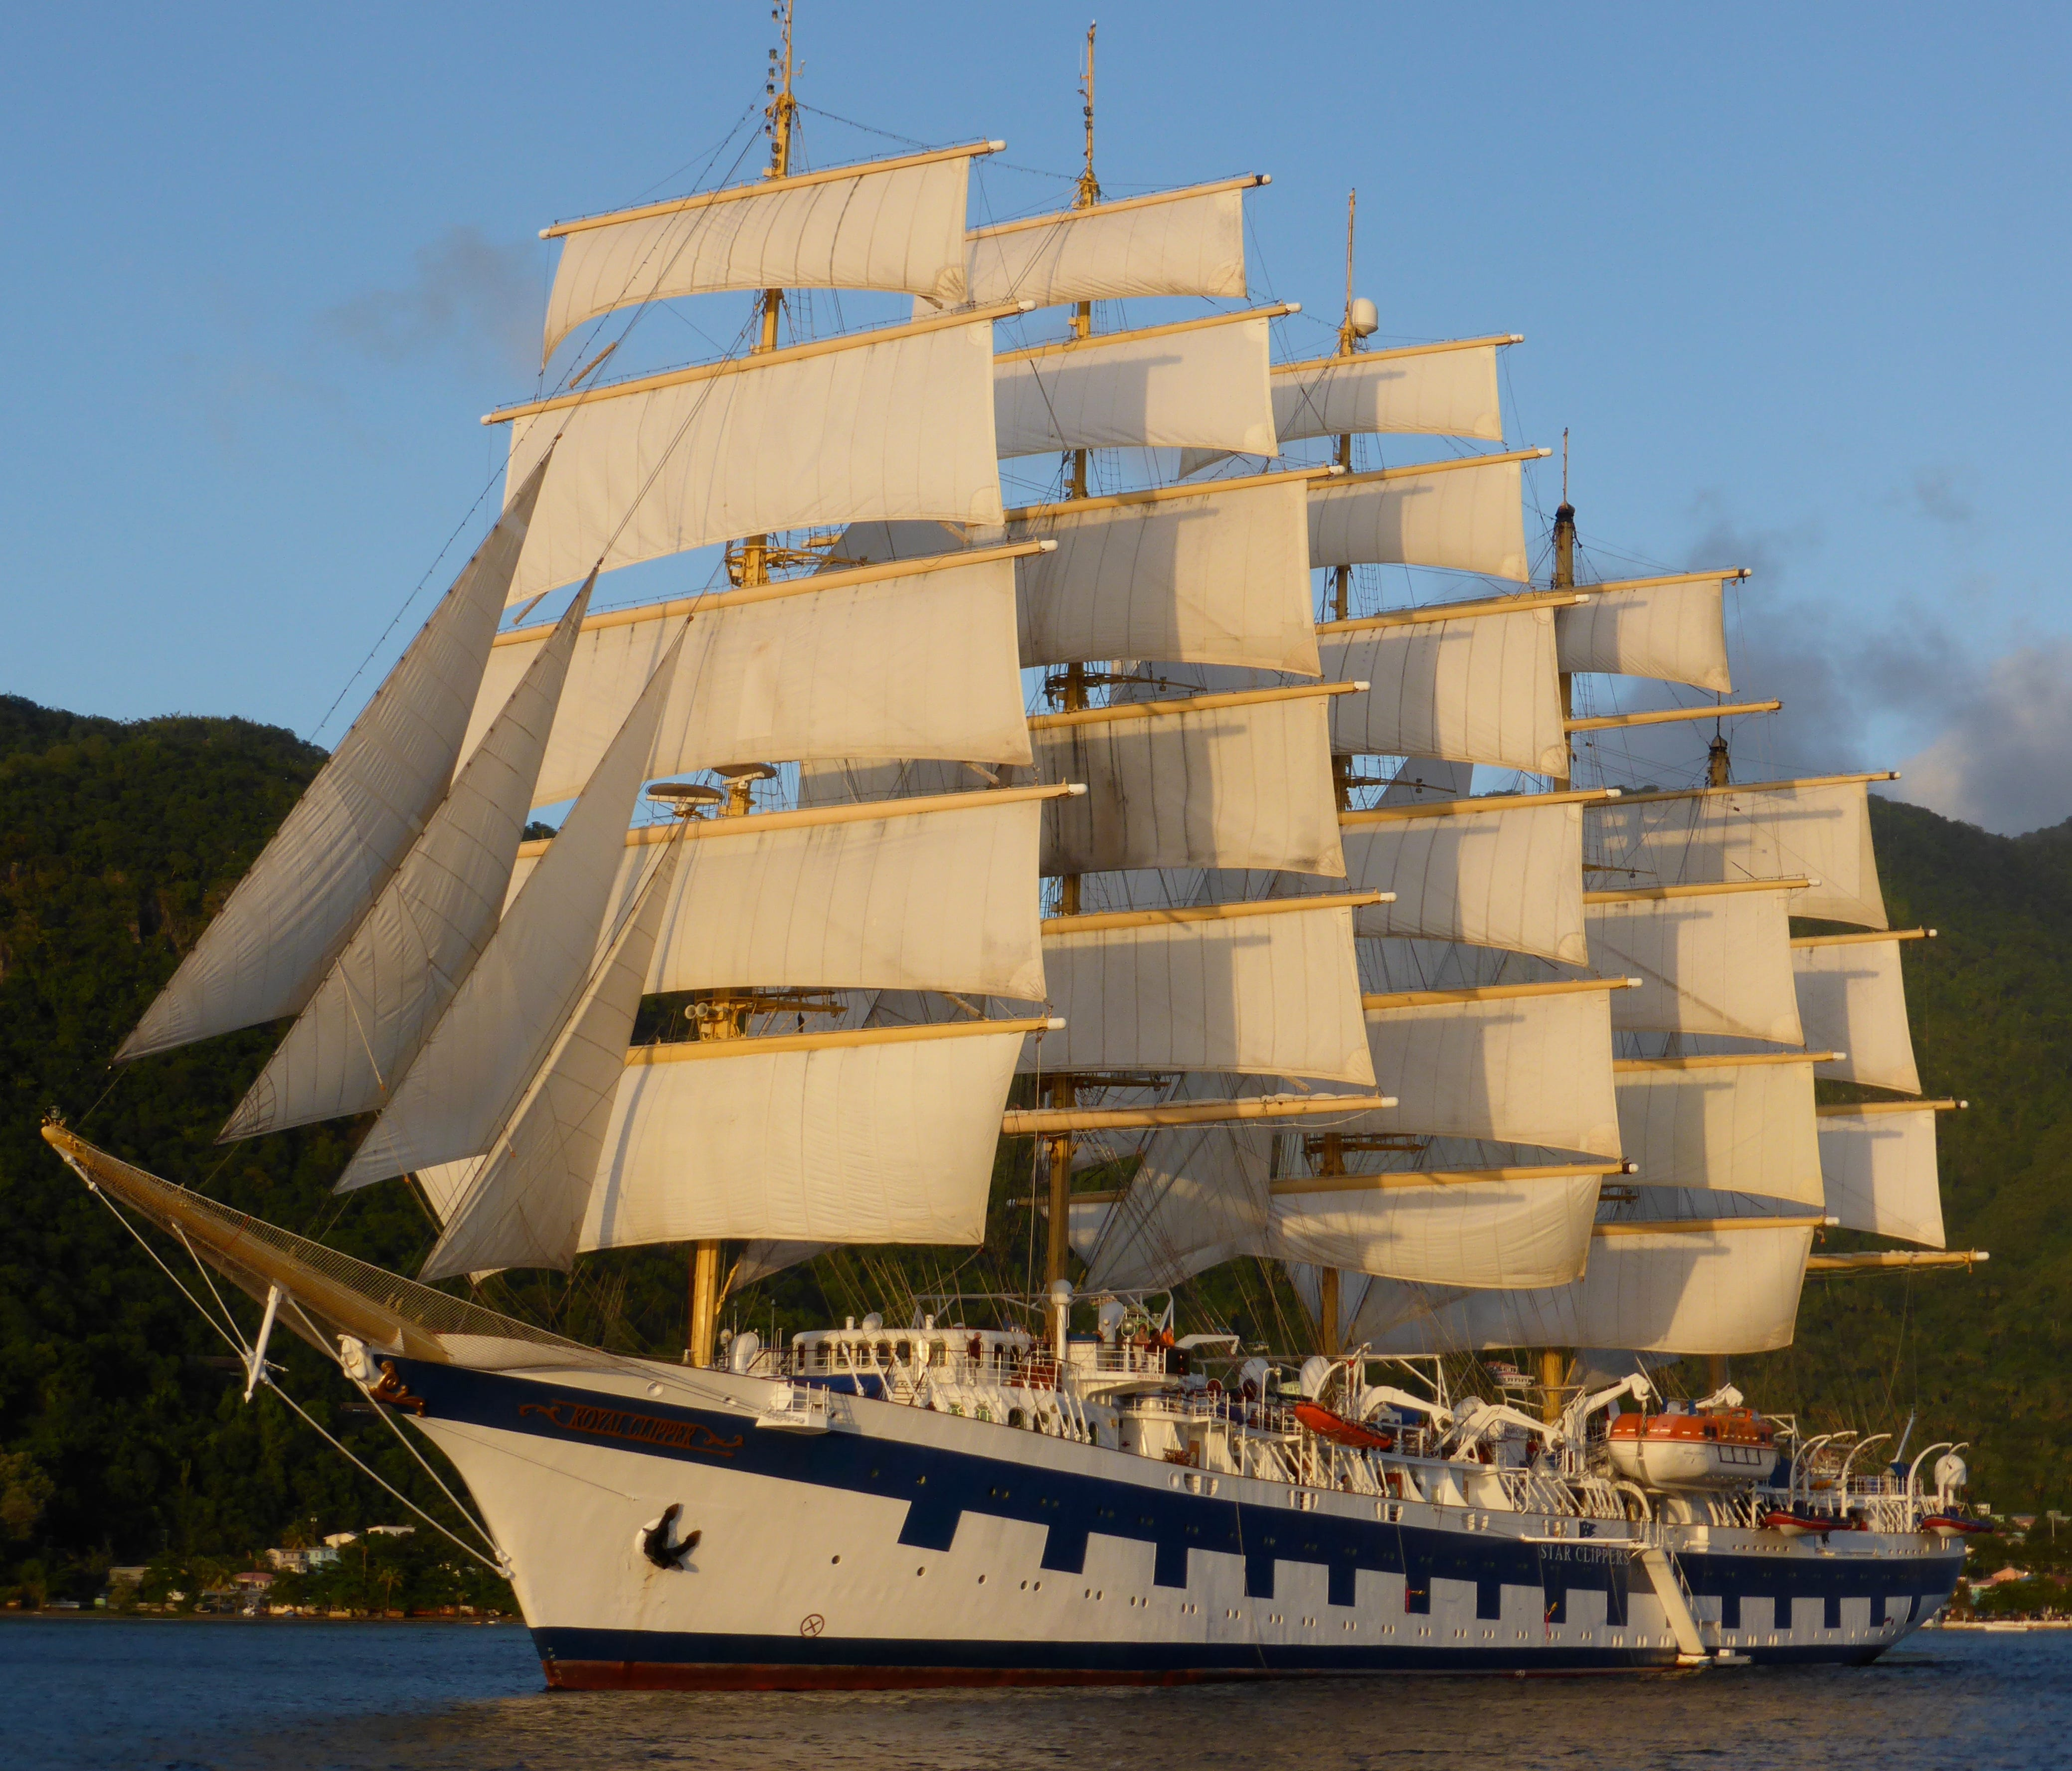 No. 12: Royal Clipper. Styled after the five-masted sailing ship Preussen of 1902, Star Clipper's 5,000-gt, 227-guest Royal Clipper is a hybrid diesel/sailing ship that currently ranks in the Guiness World Records as the world's largest passenger sai